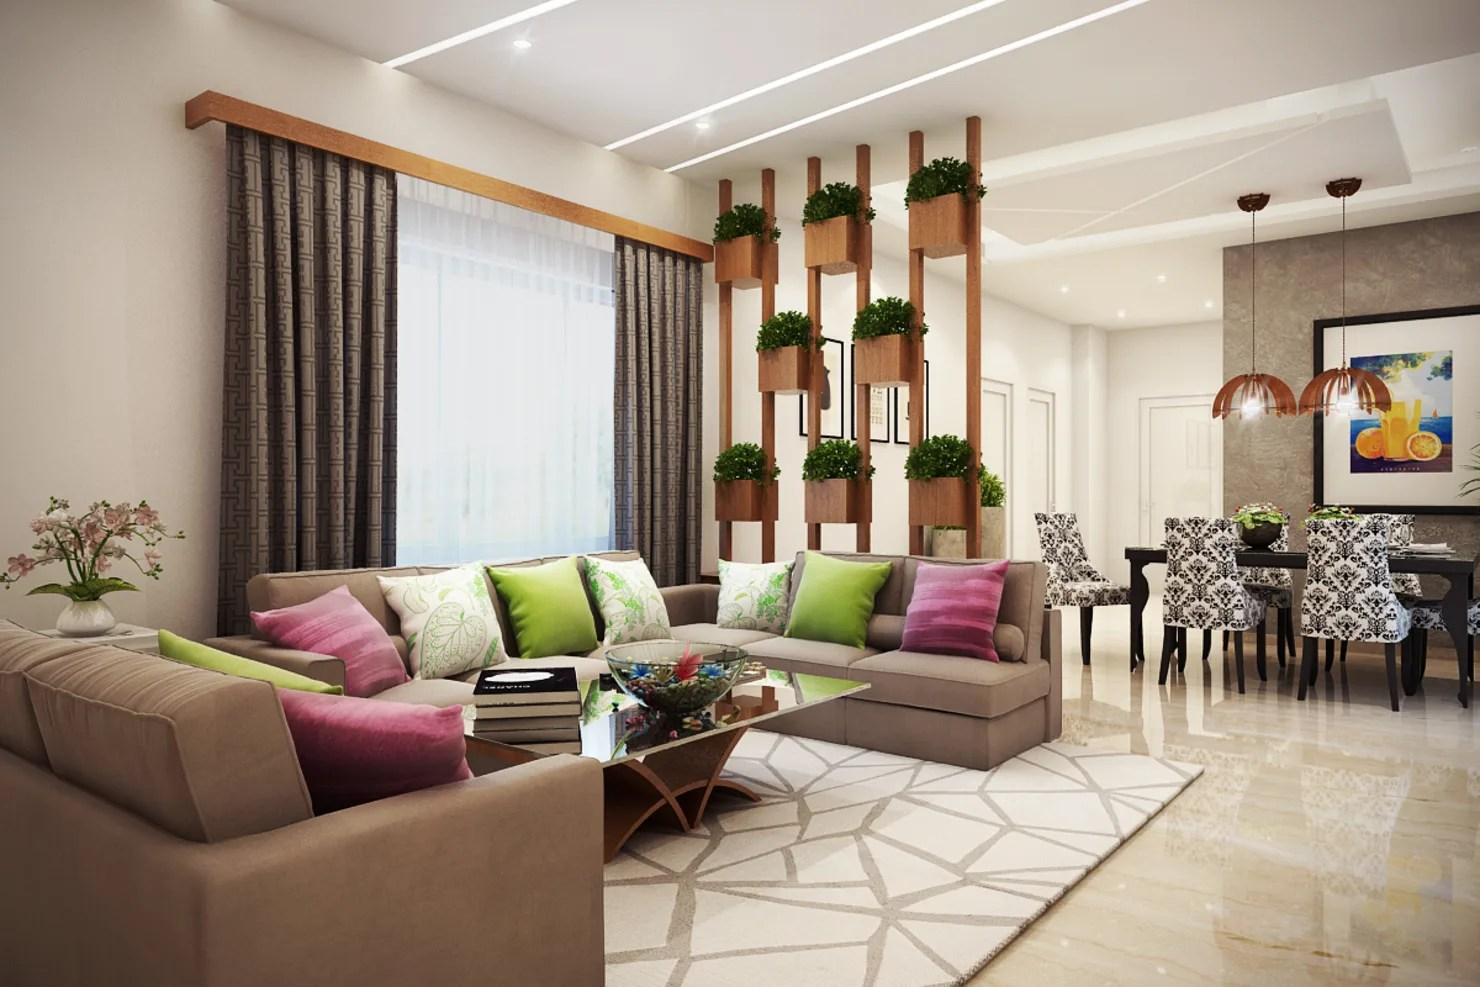 Home In Pune With Functional Interior Designs